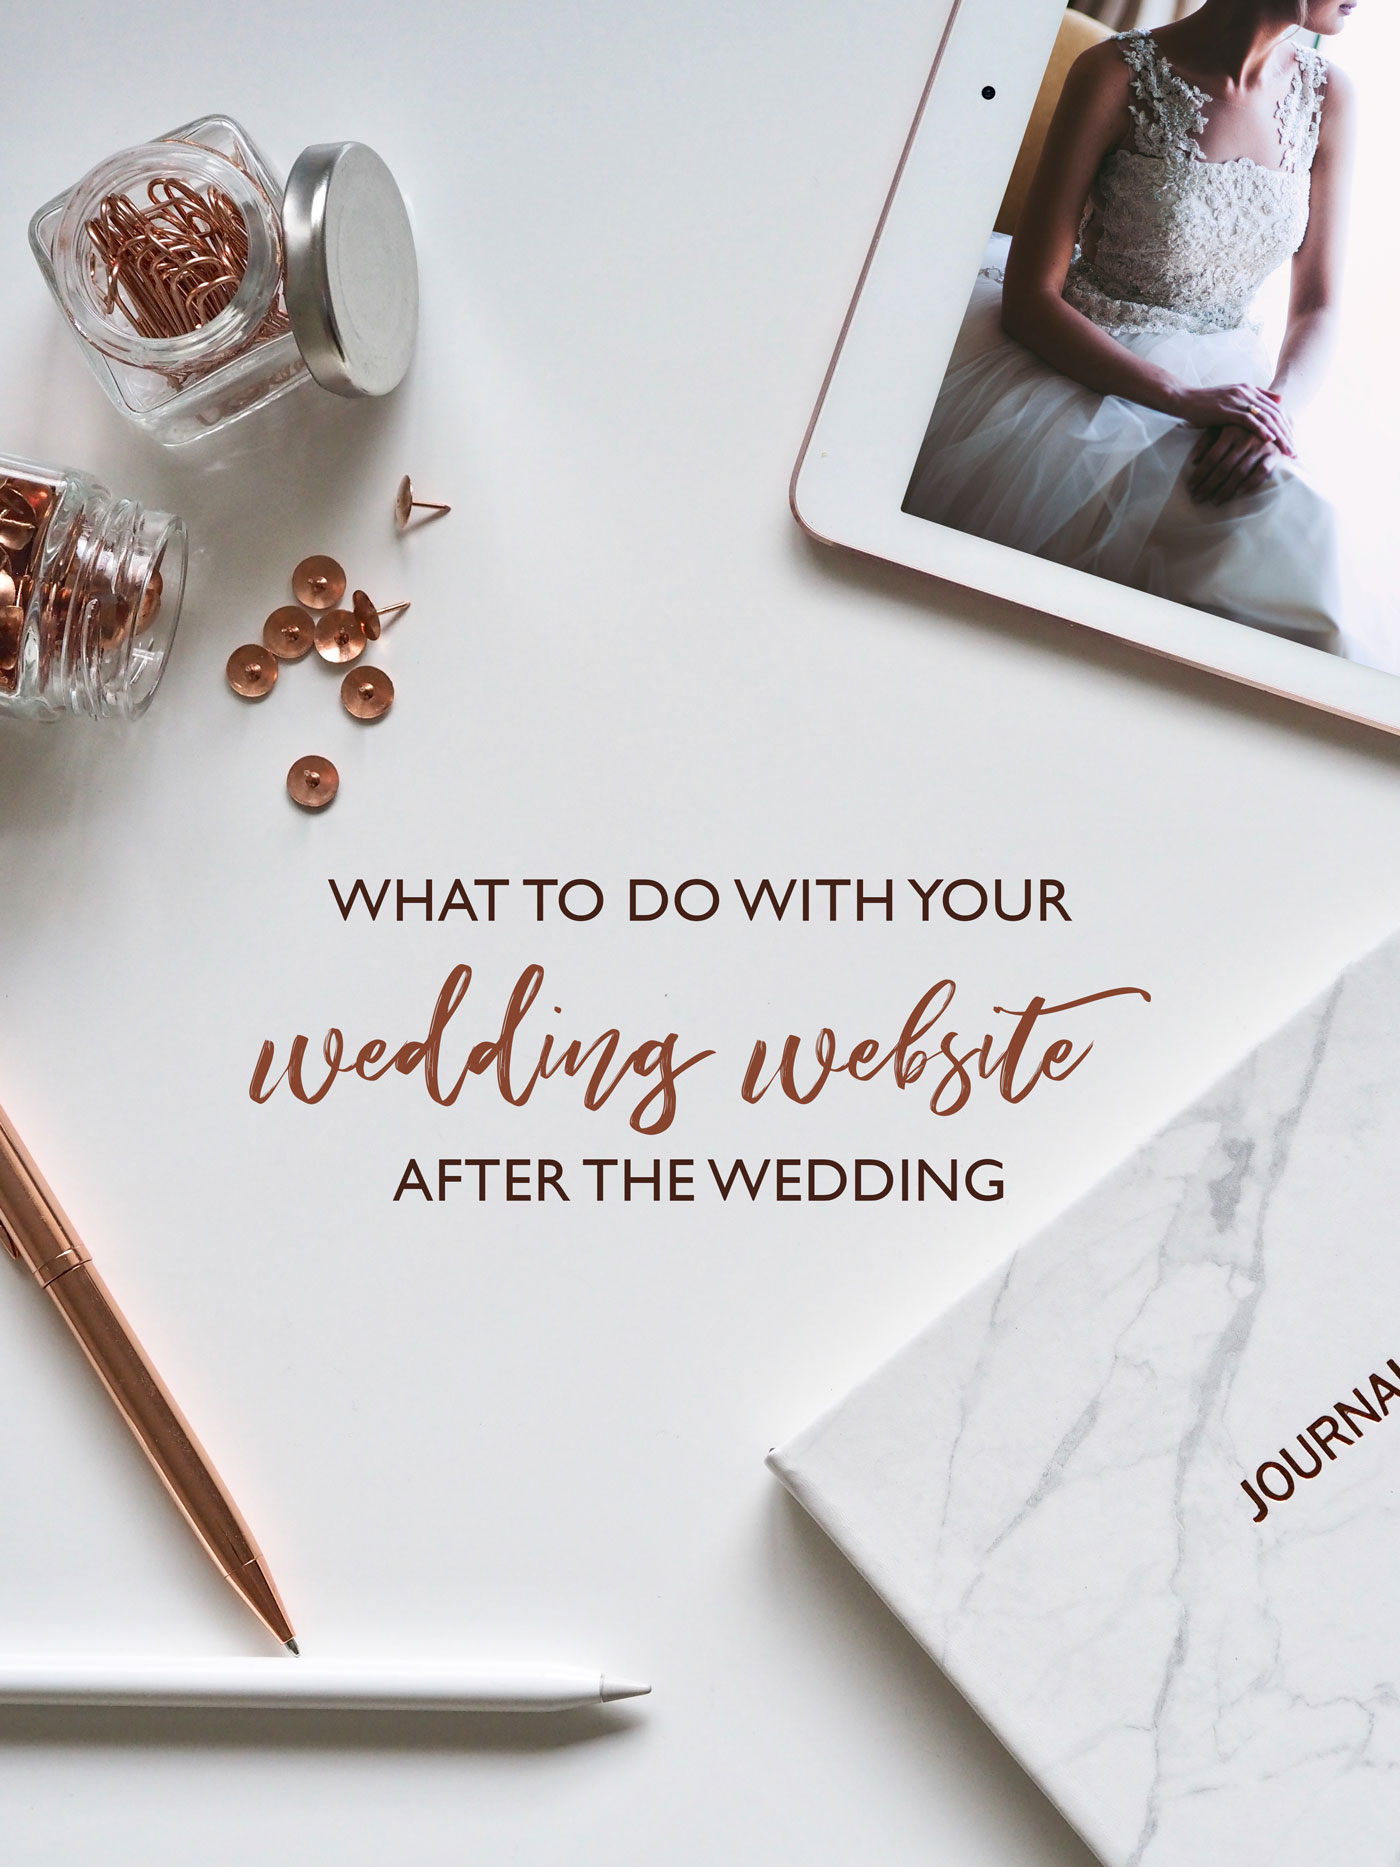 What to do with your wedding website after the wedding!